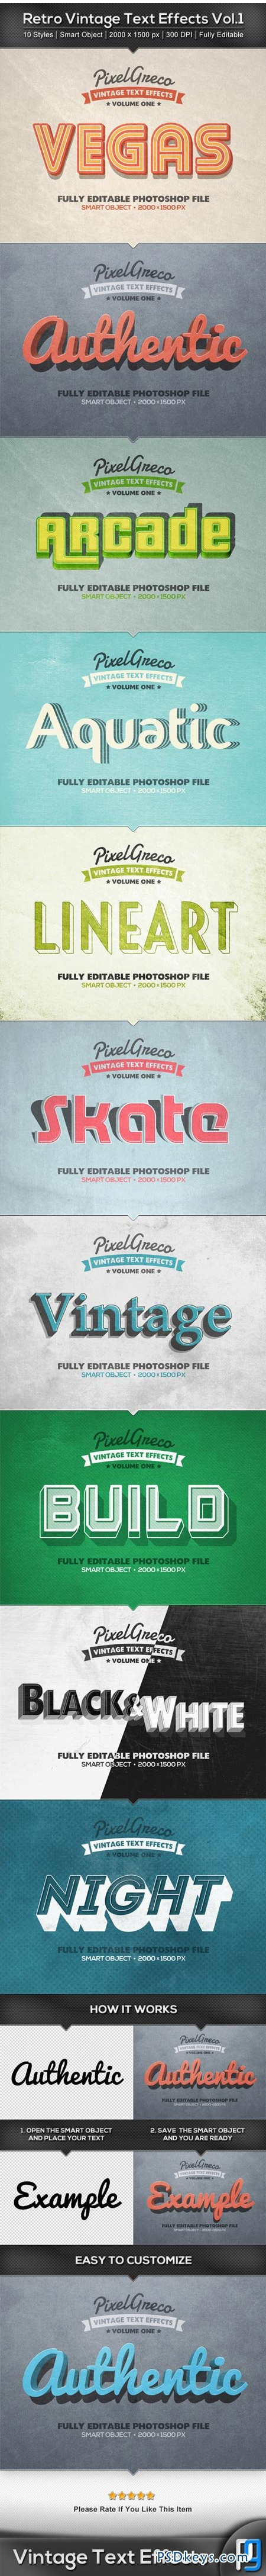 graphicriver_retro_vintage_text_effects_vol1_8935050_cap